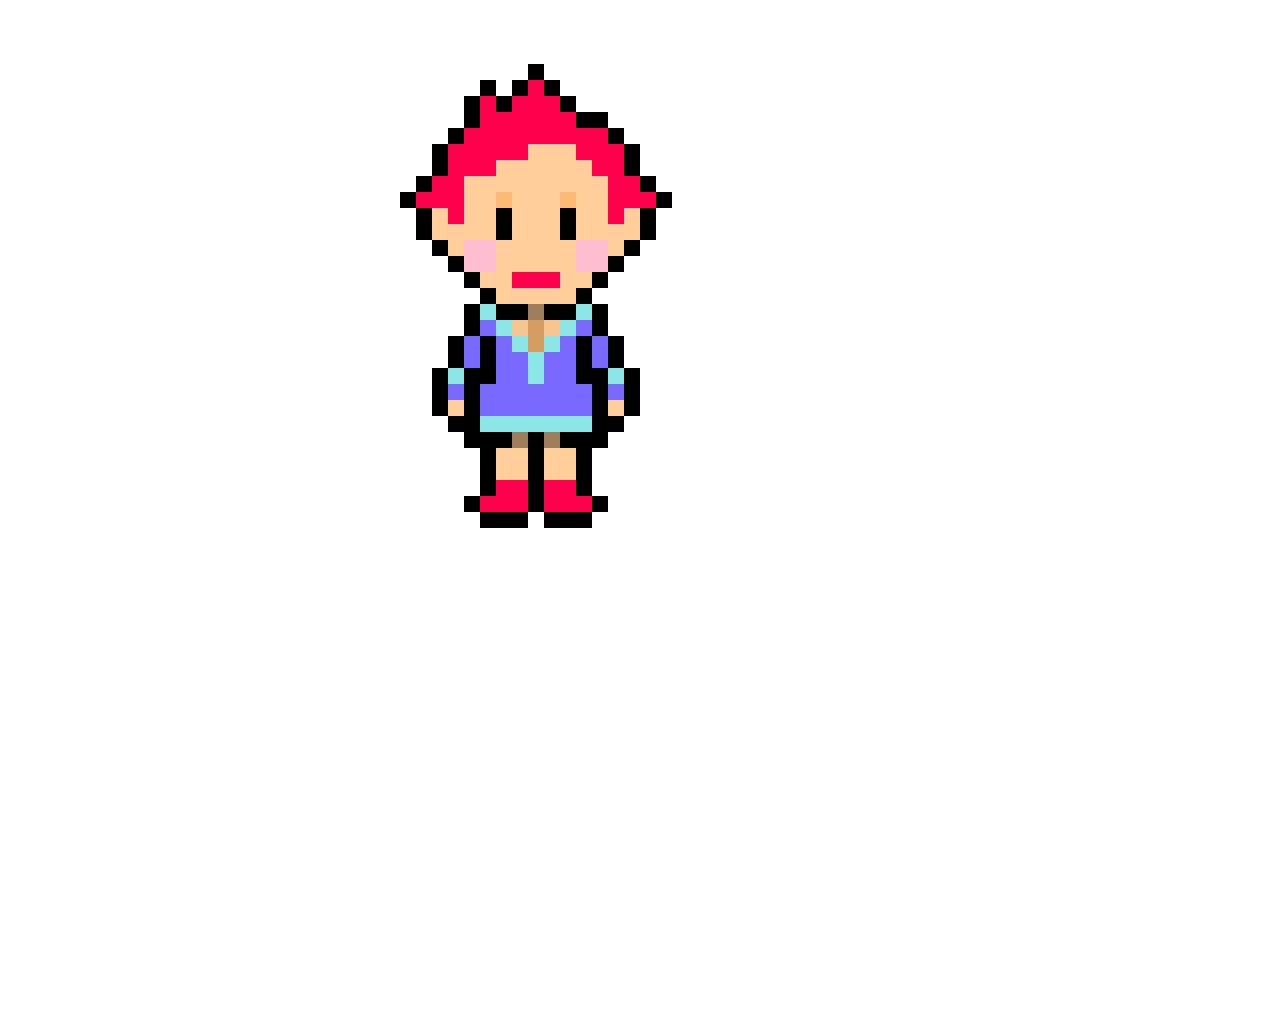 Kmuatora from Mother 3 (Earthbound series)